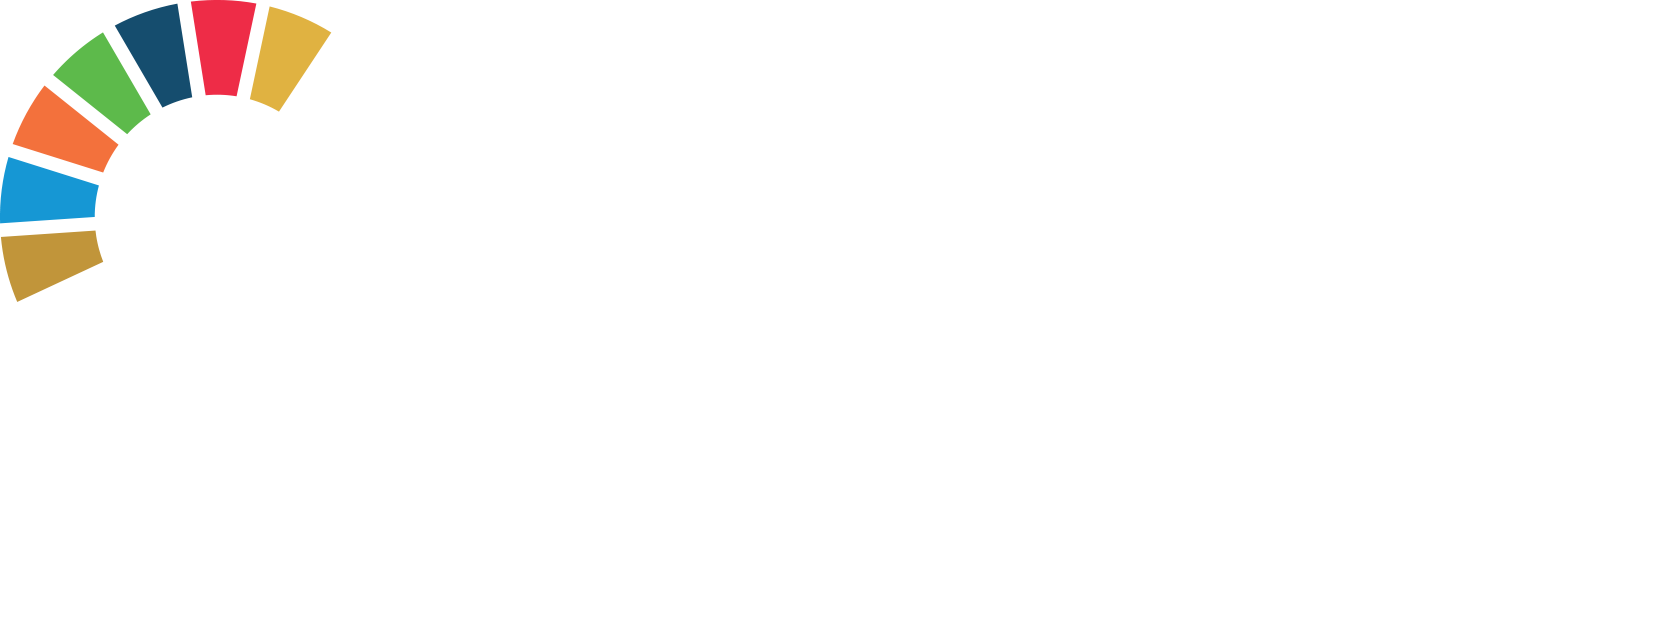 SDG Business Forum - High-level Political Forum